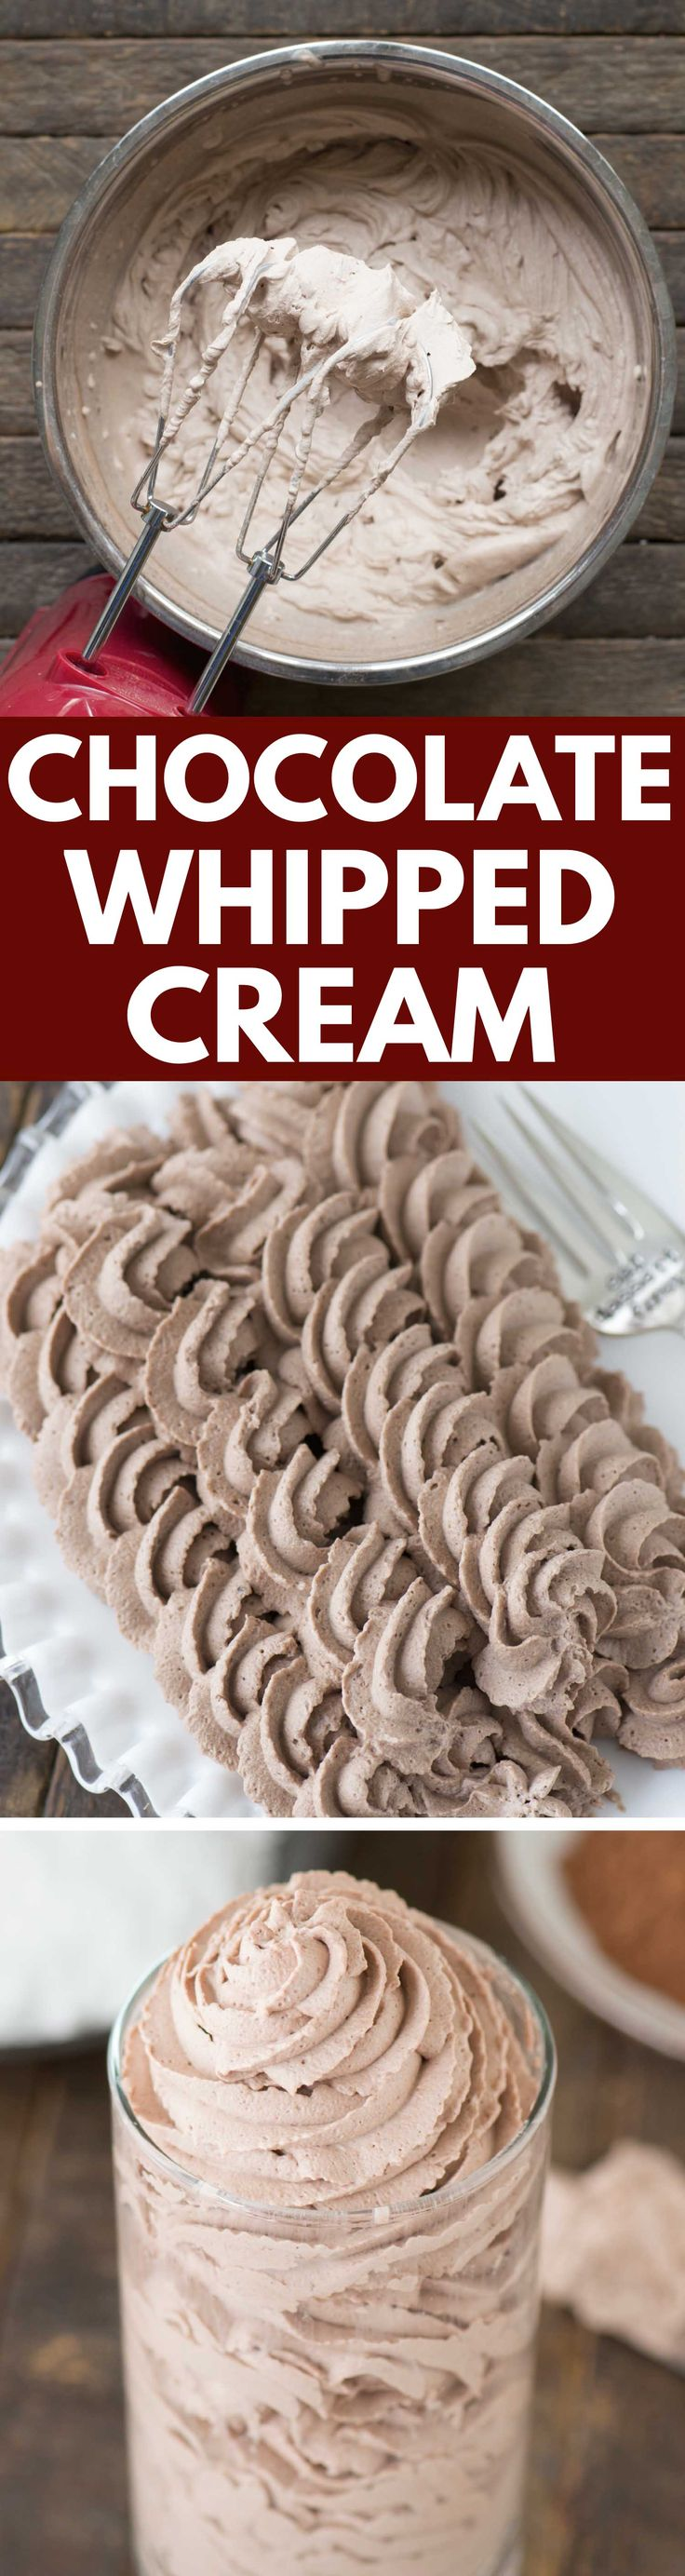 Learn how to make the easiest homemade chocolate whipped cream with only 3 ingredients!: